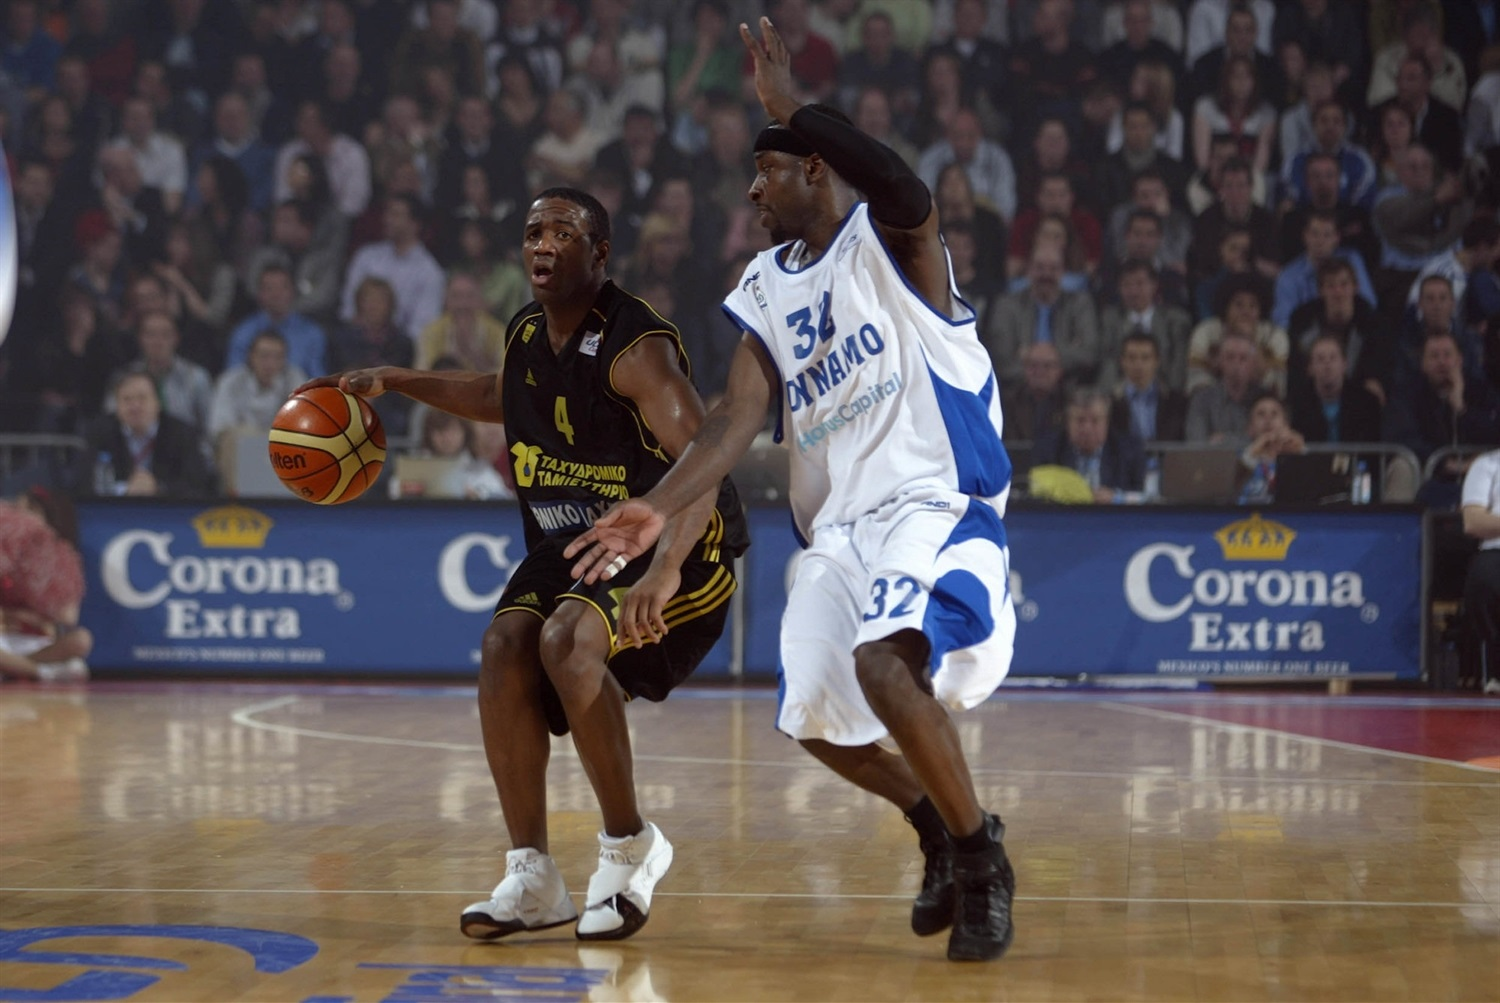 Terrel Castle - Aris Thessaloniki - Final 2005-06 - EC05